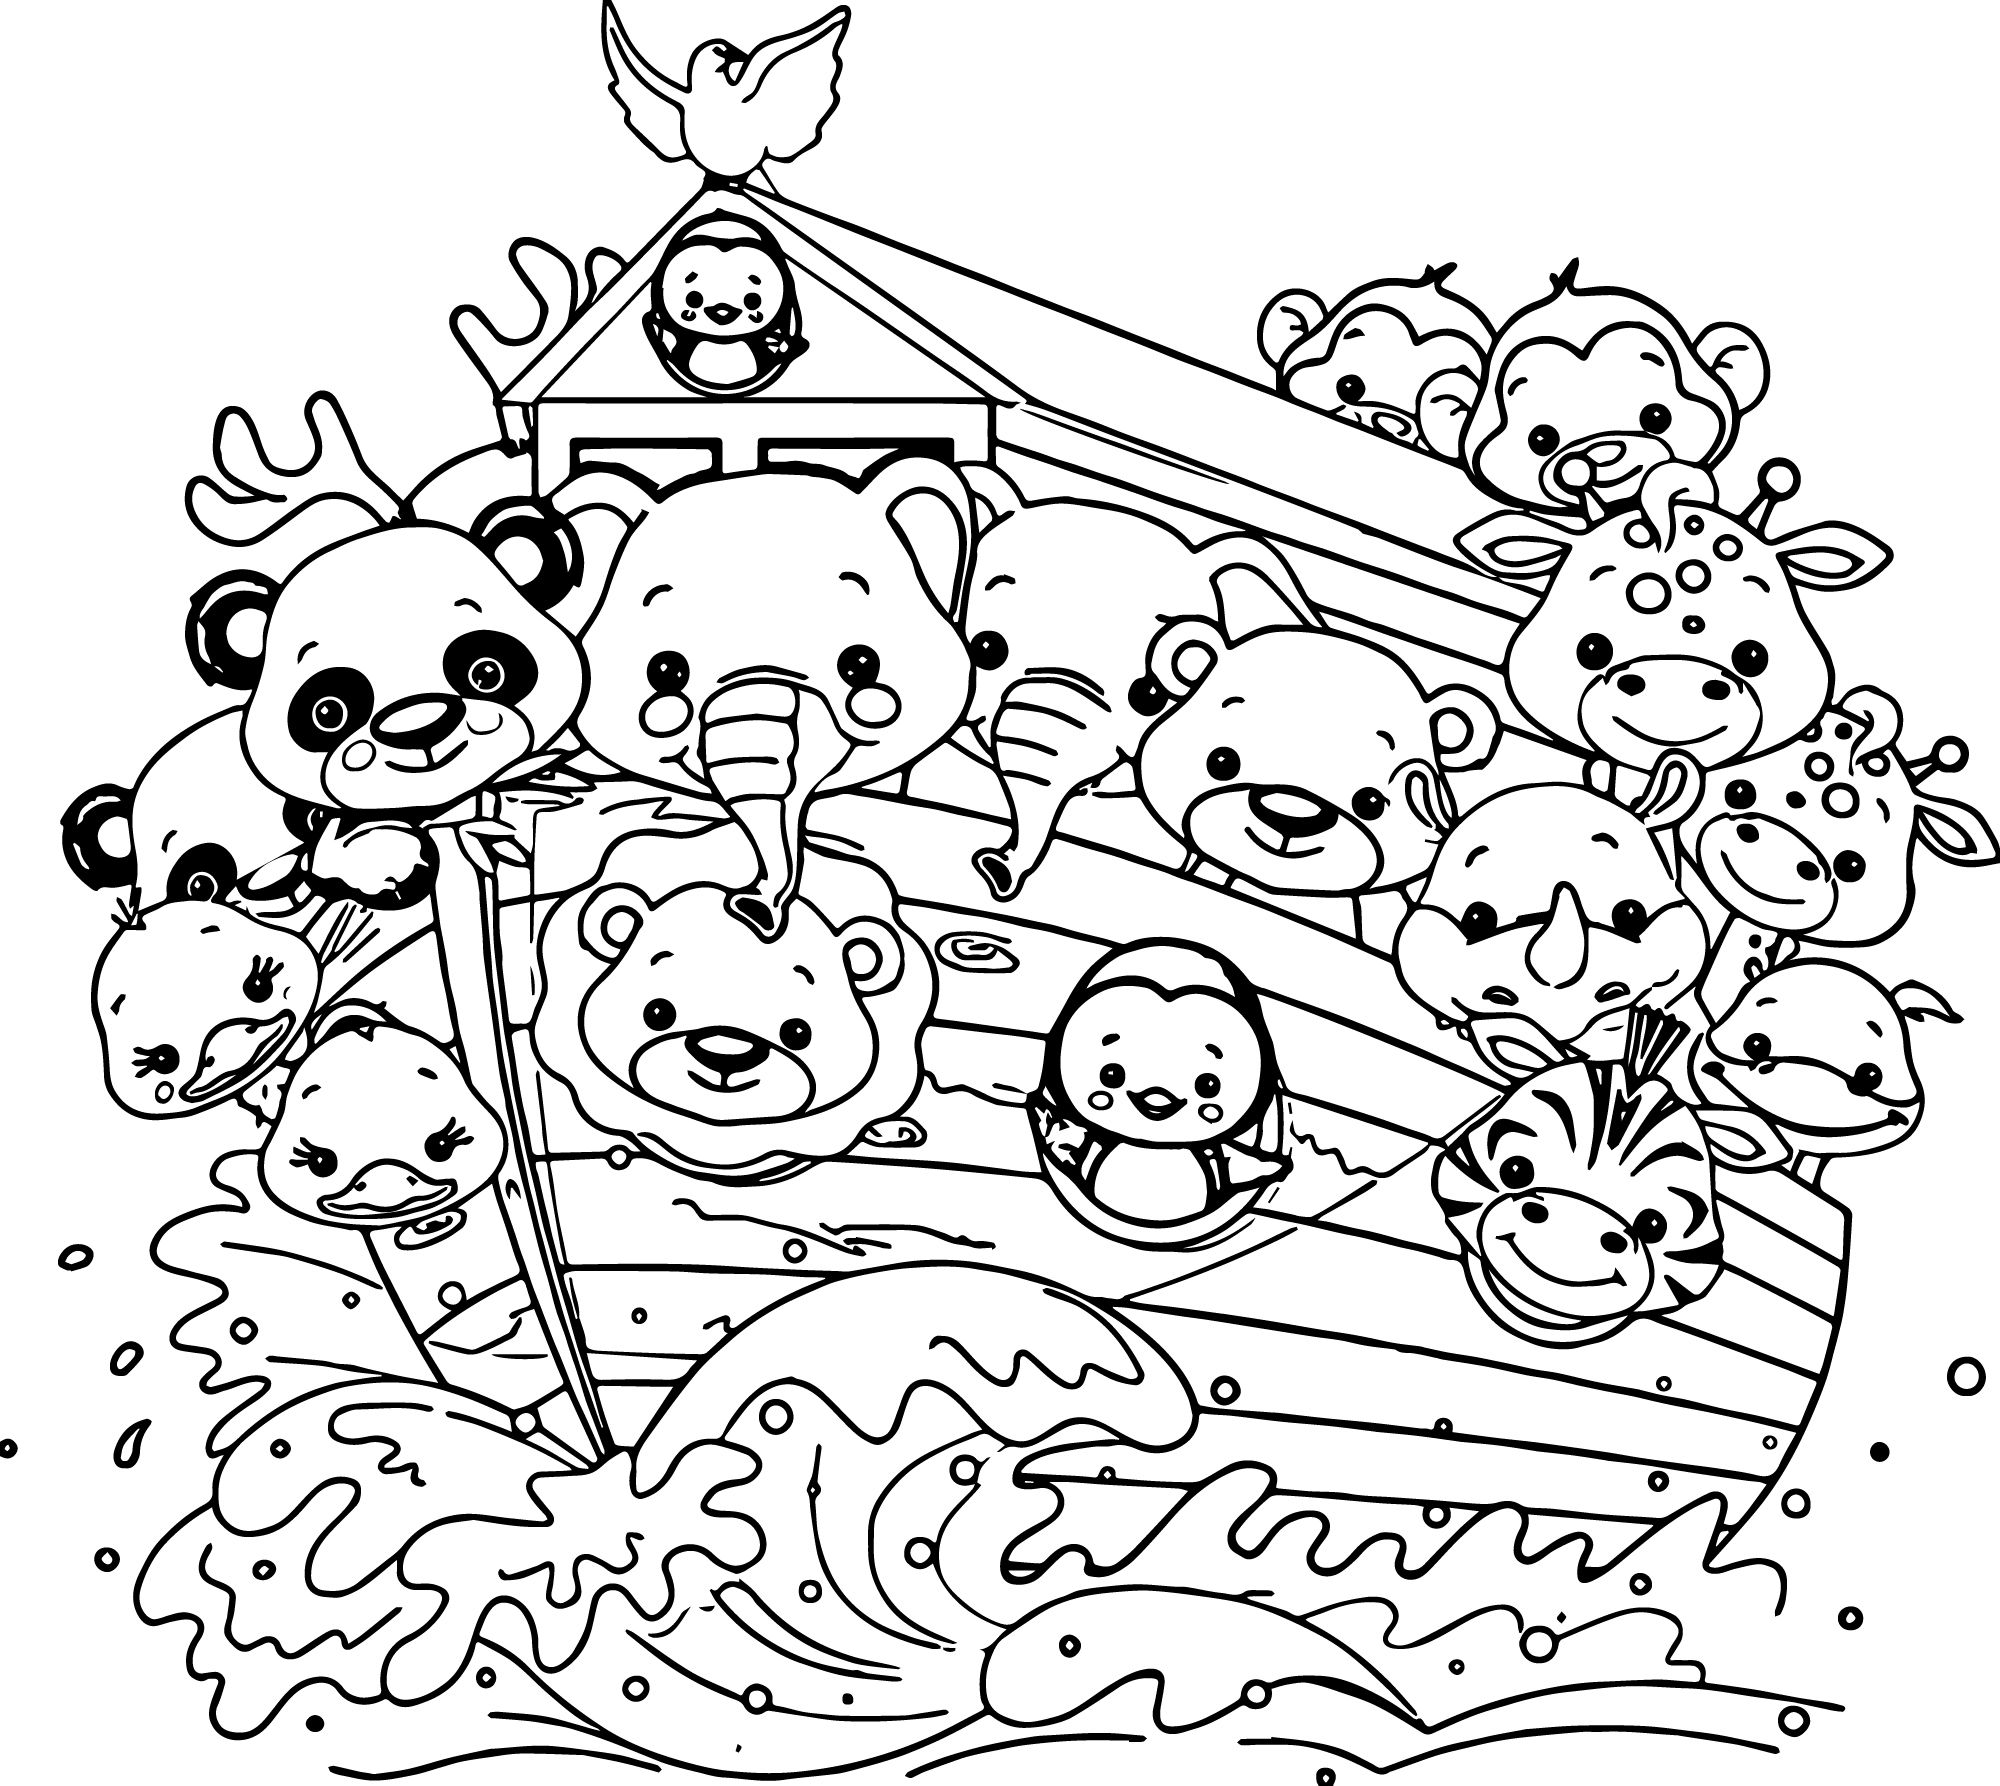 Noahs Ark Cartoon Coloring Pages